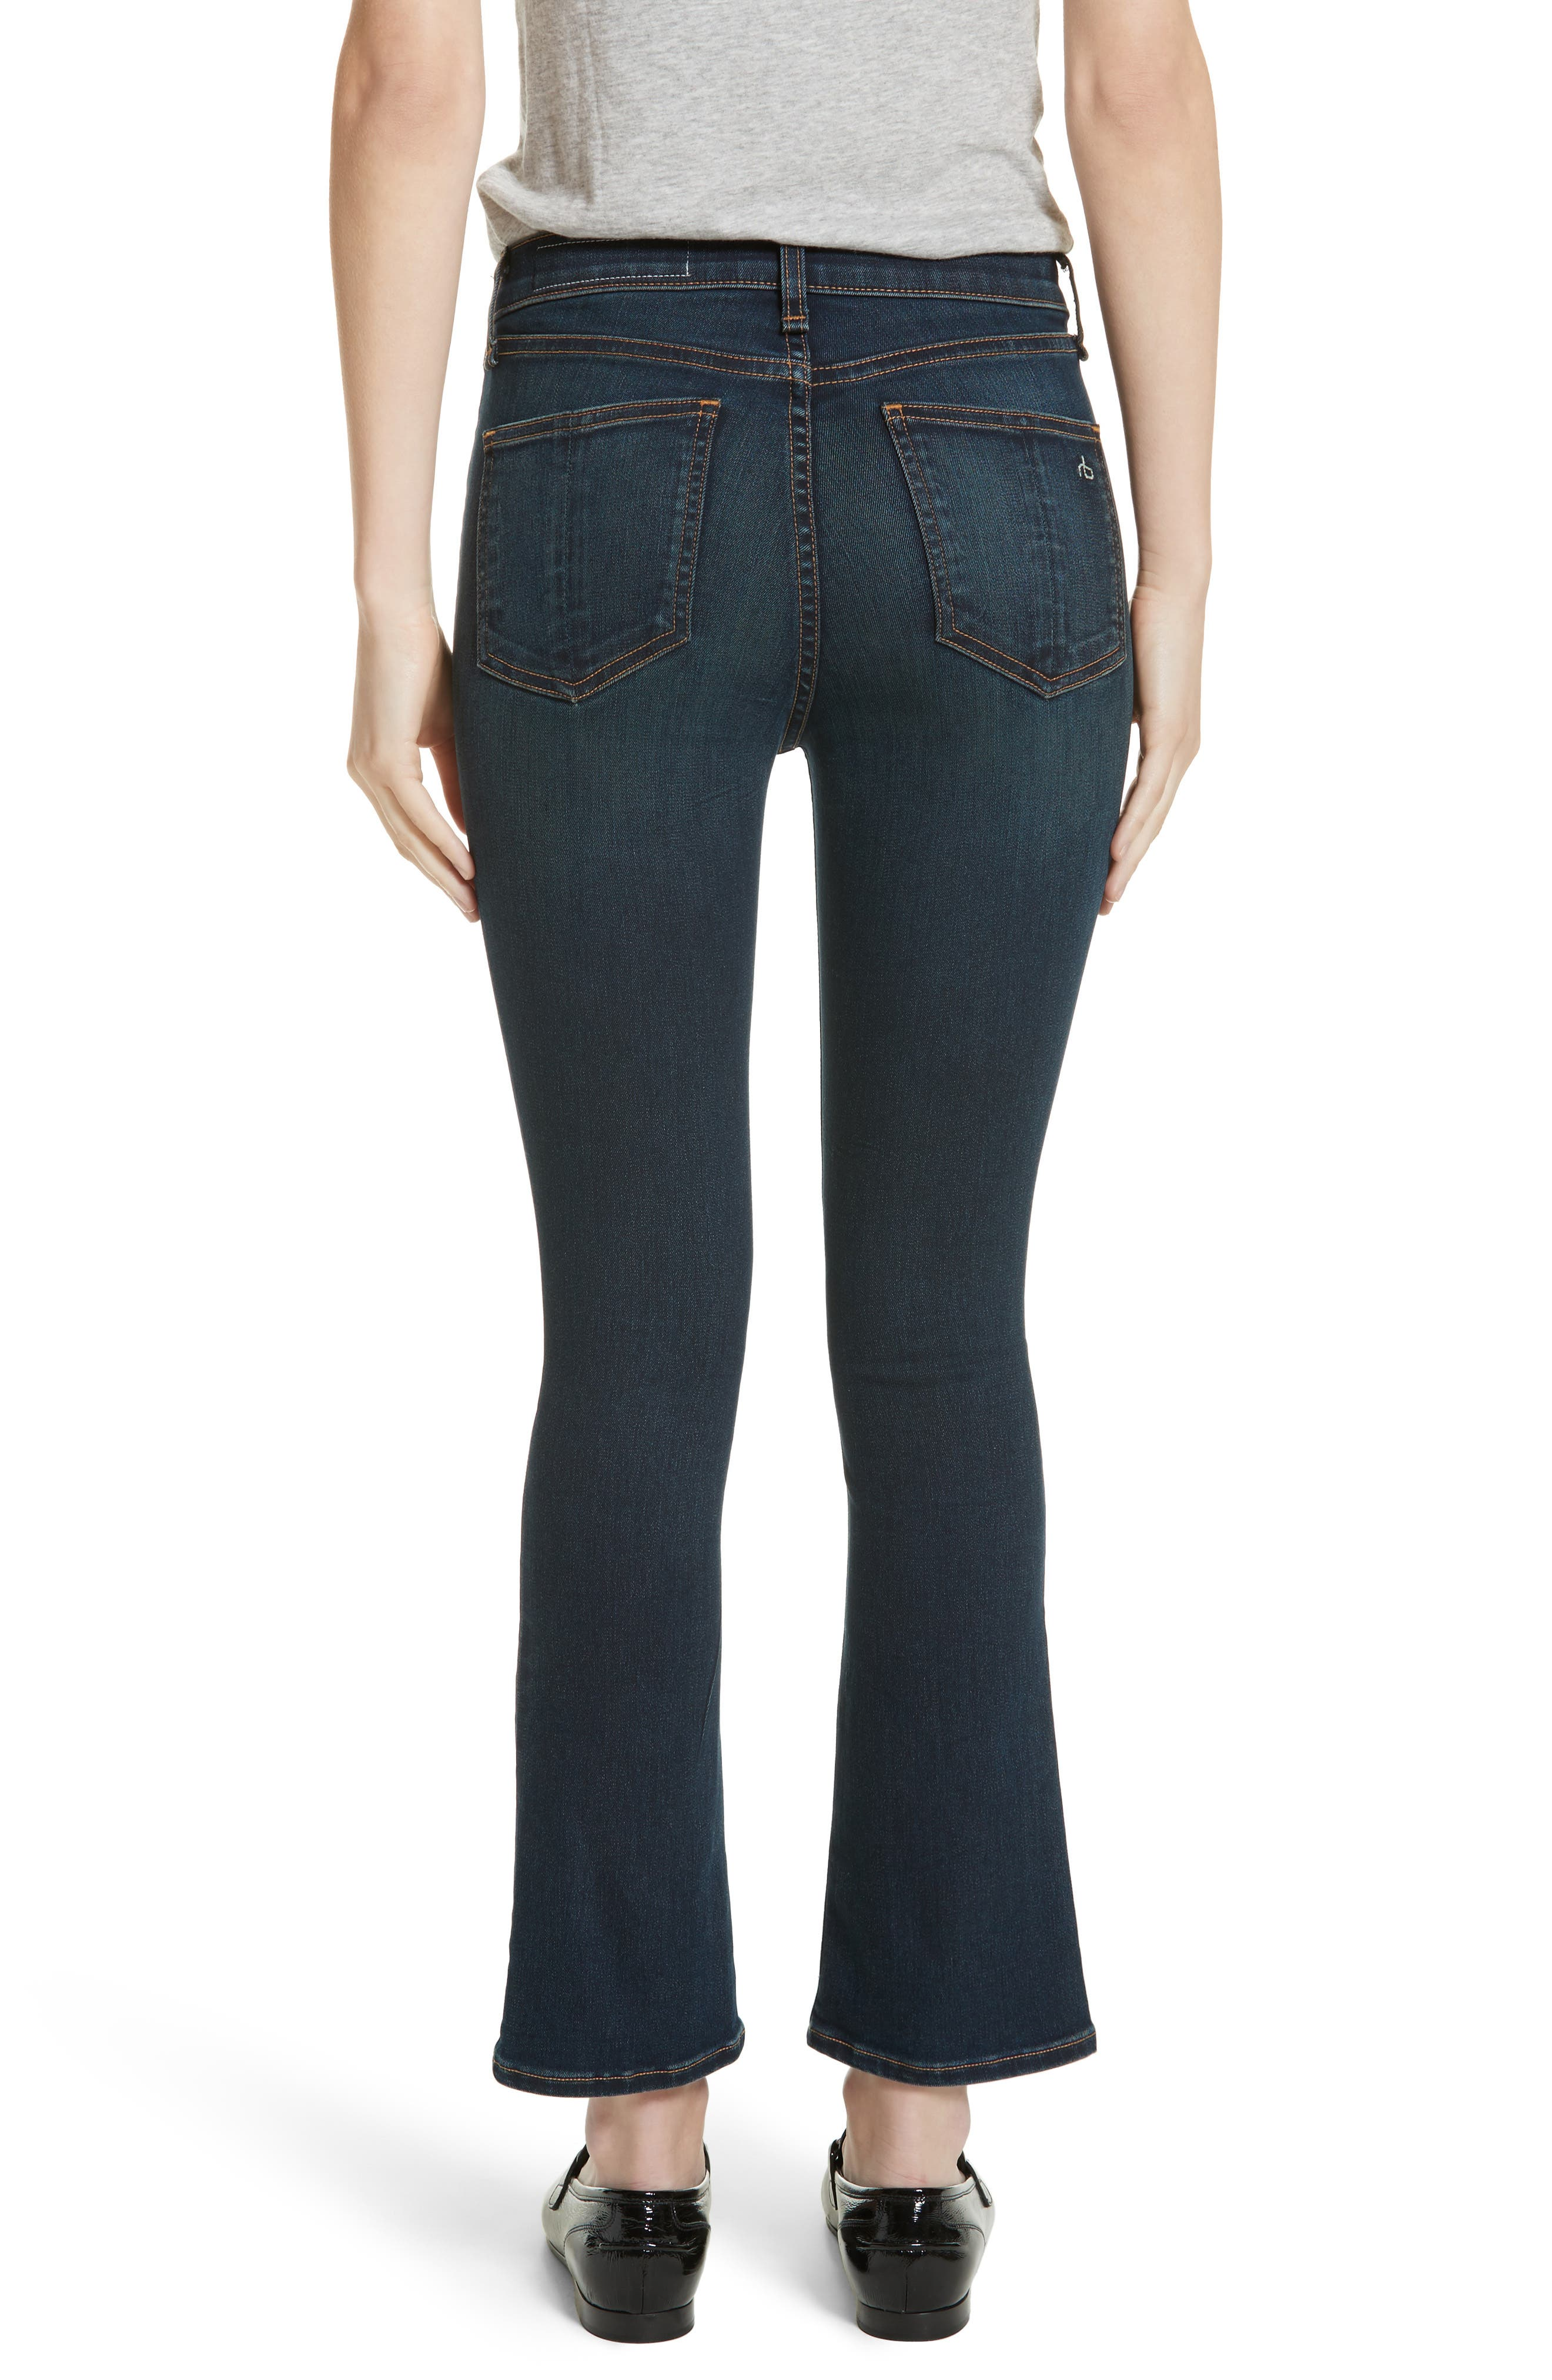 Alternate Image 2  - rag & bone/JEAN Hana High Waist Crop Flare Jeans (Bedford)